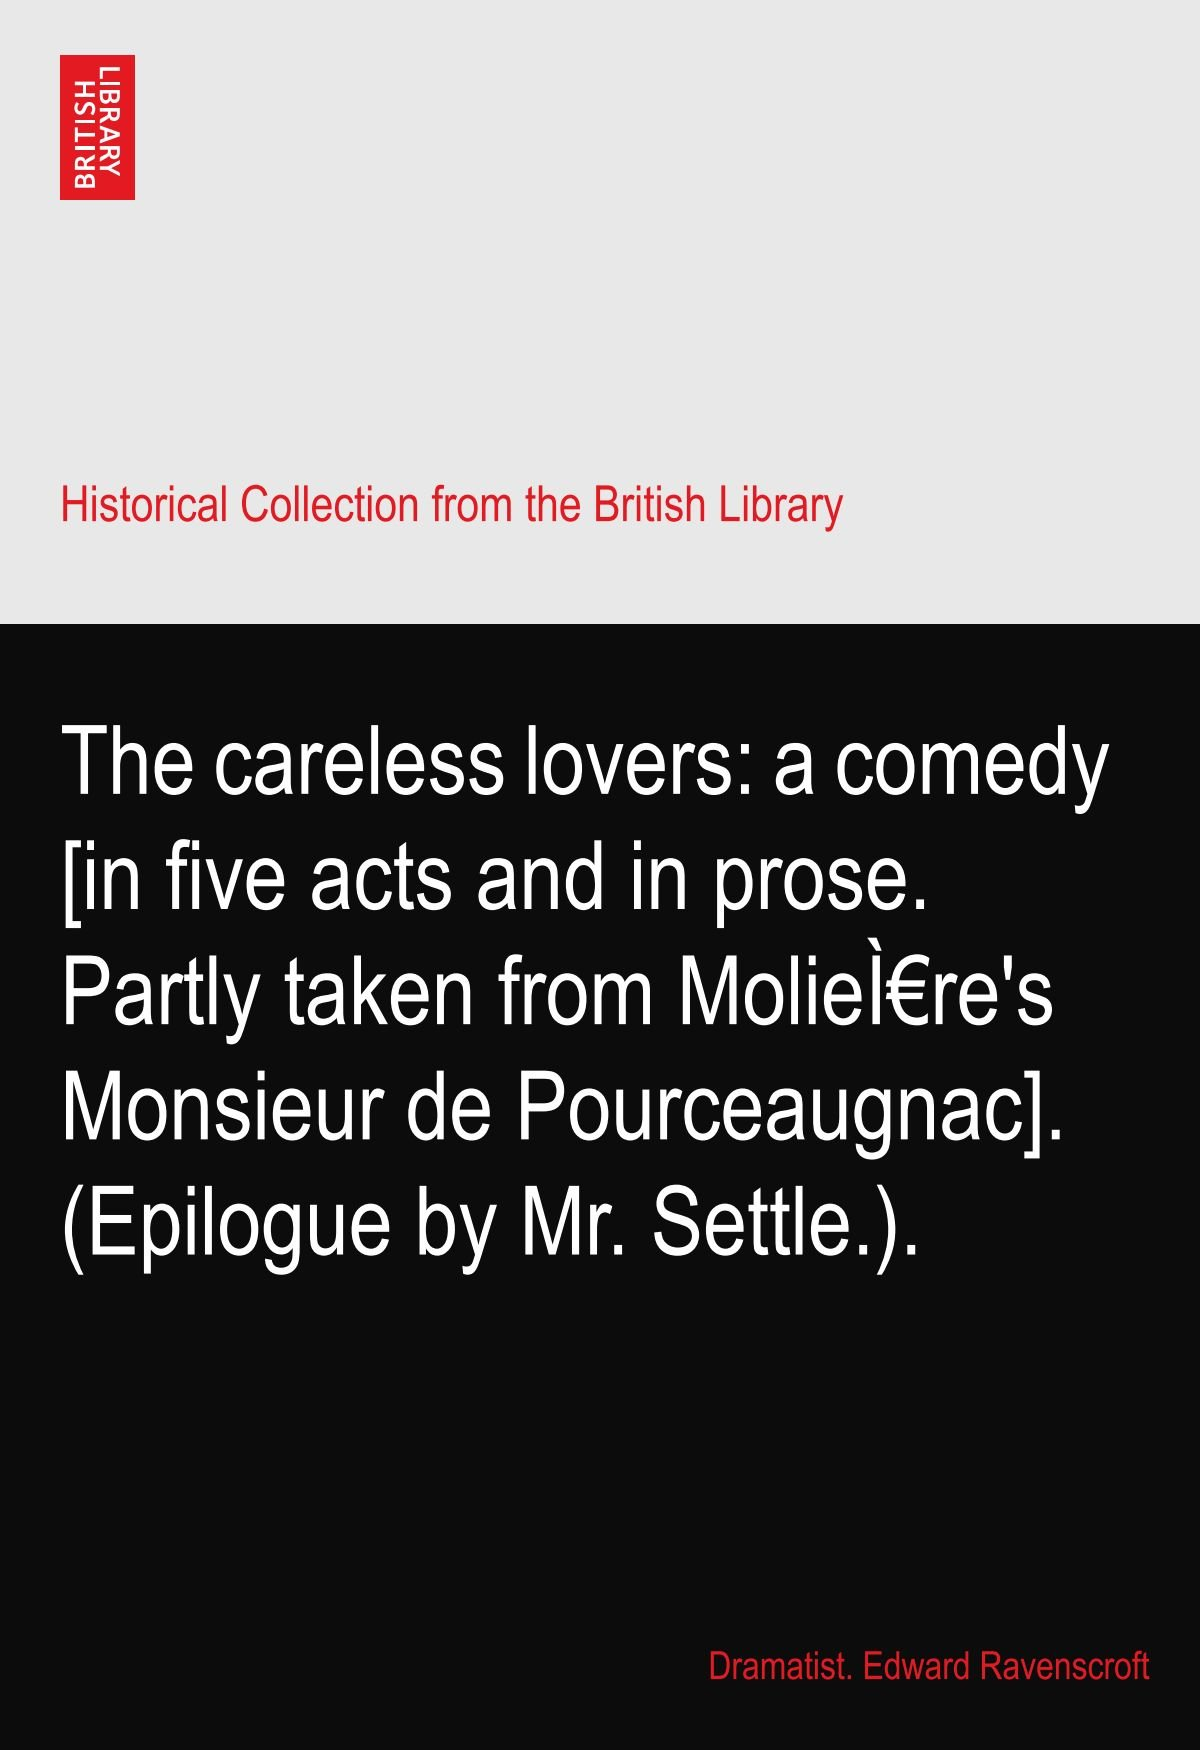 Download The careless lovers: a comedy [in five acts and in prose. Partly taken from Molière's Monsieur de Pourceaugnac]. (Epilogue by Mr. Settle.). ebook